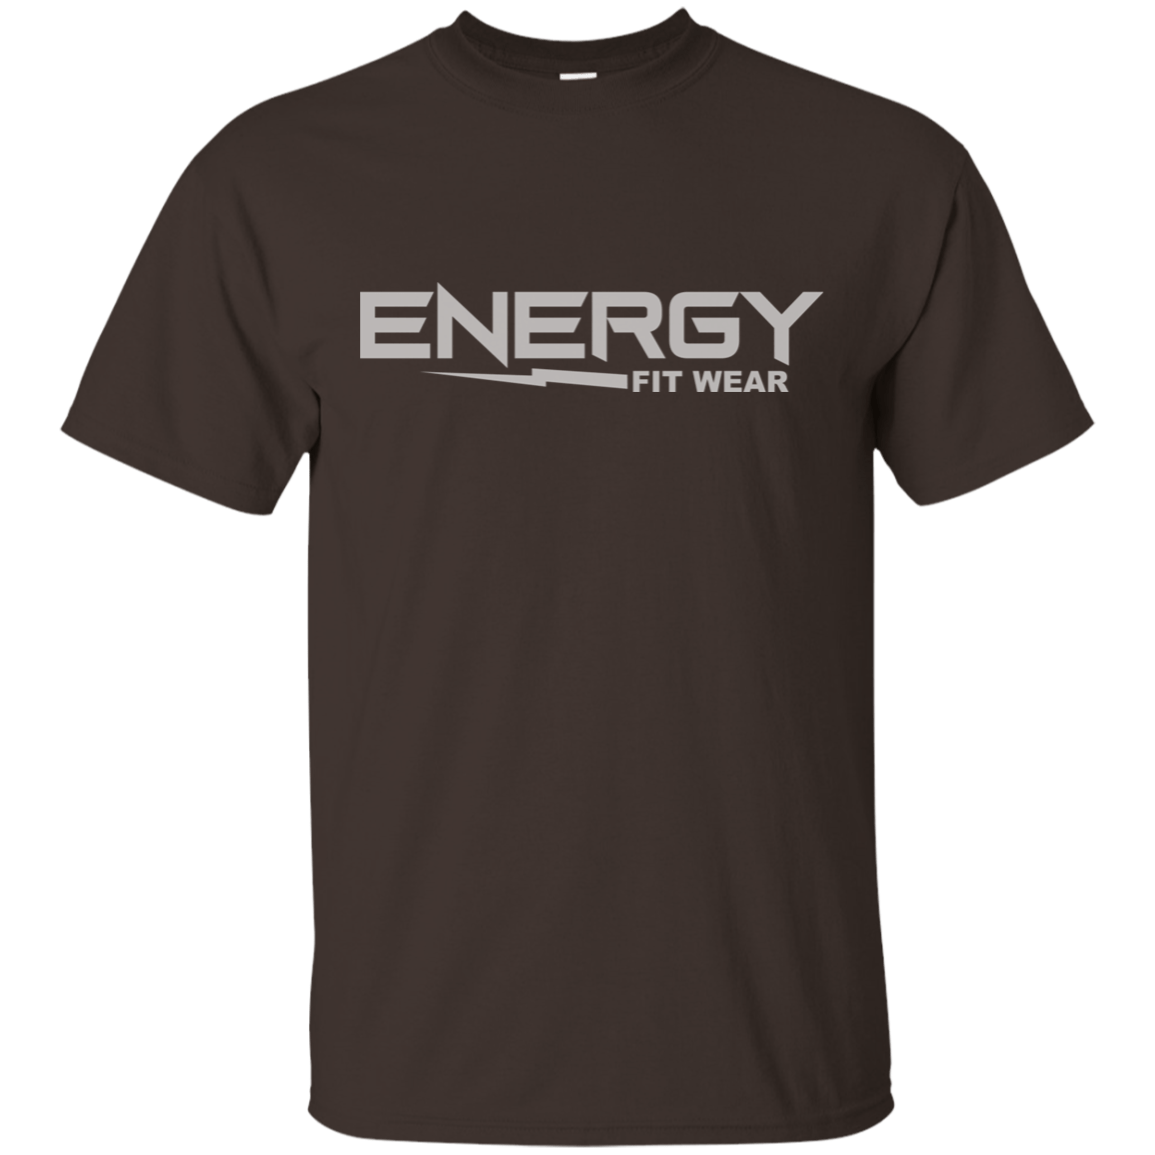 Ultra Cotton Energy Fit Wear T-Shirt